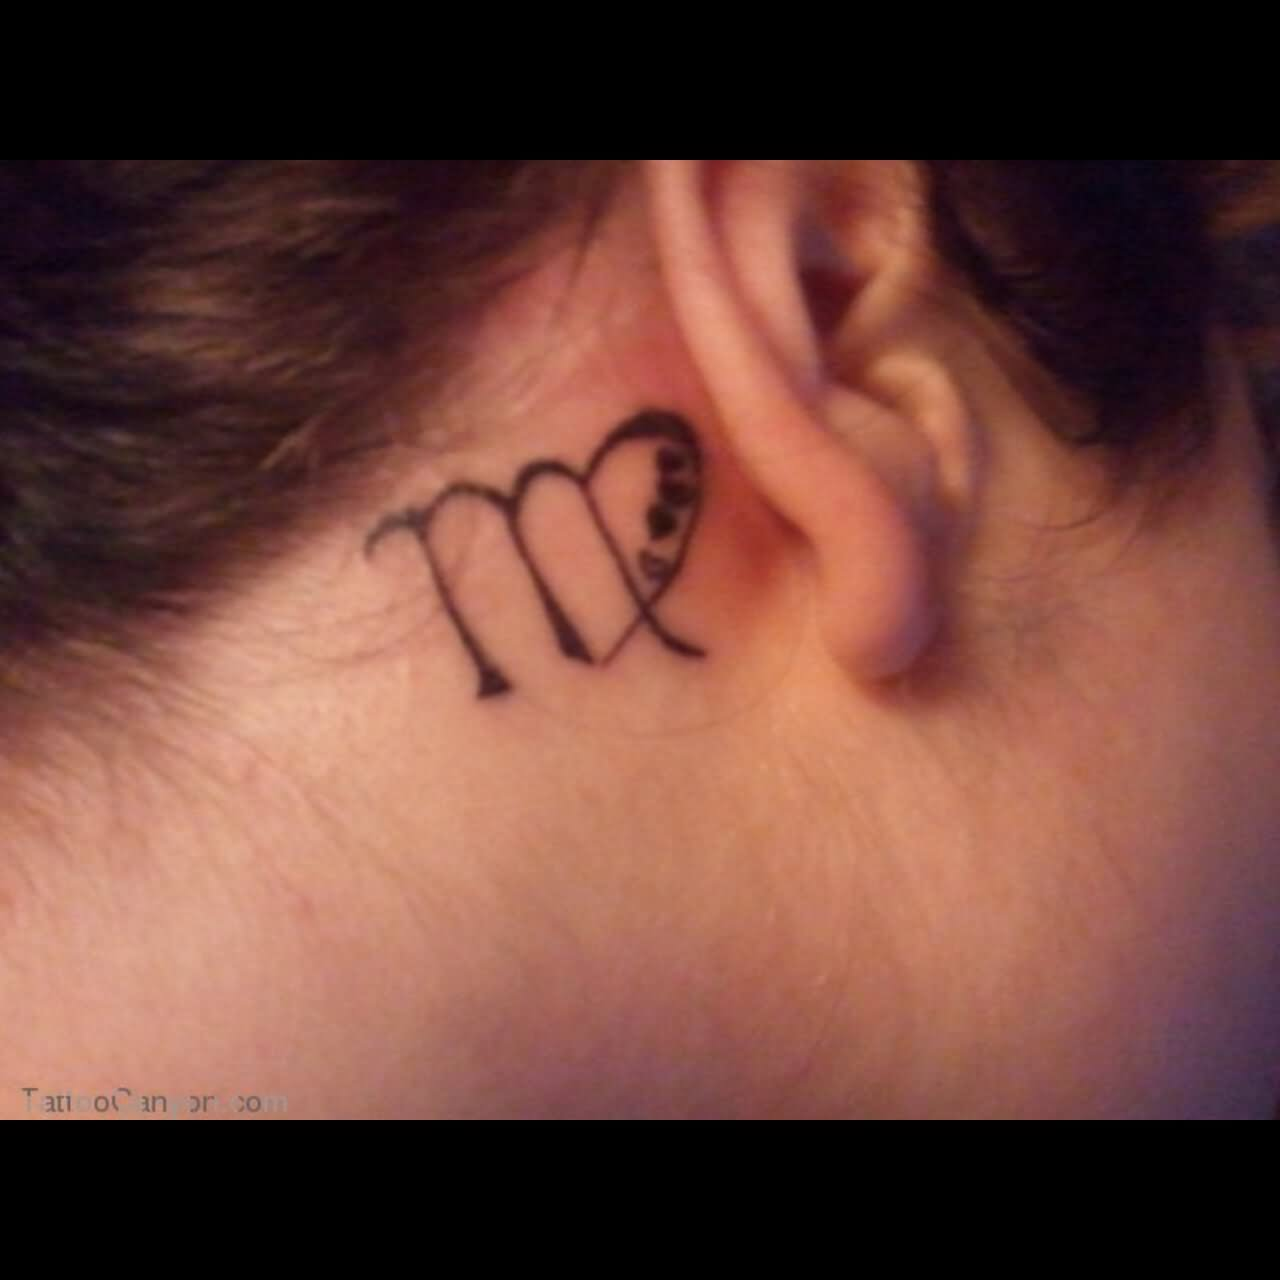 50 Awesome Behind The Ear Tattoos